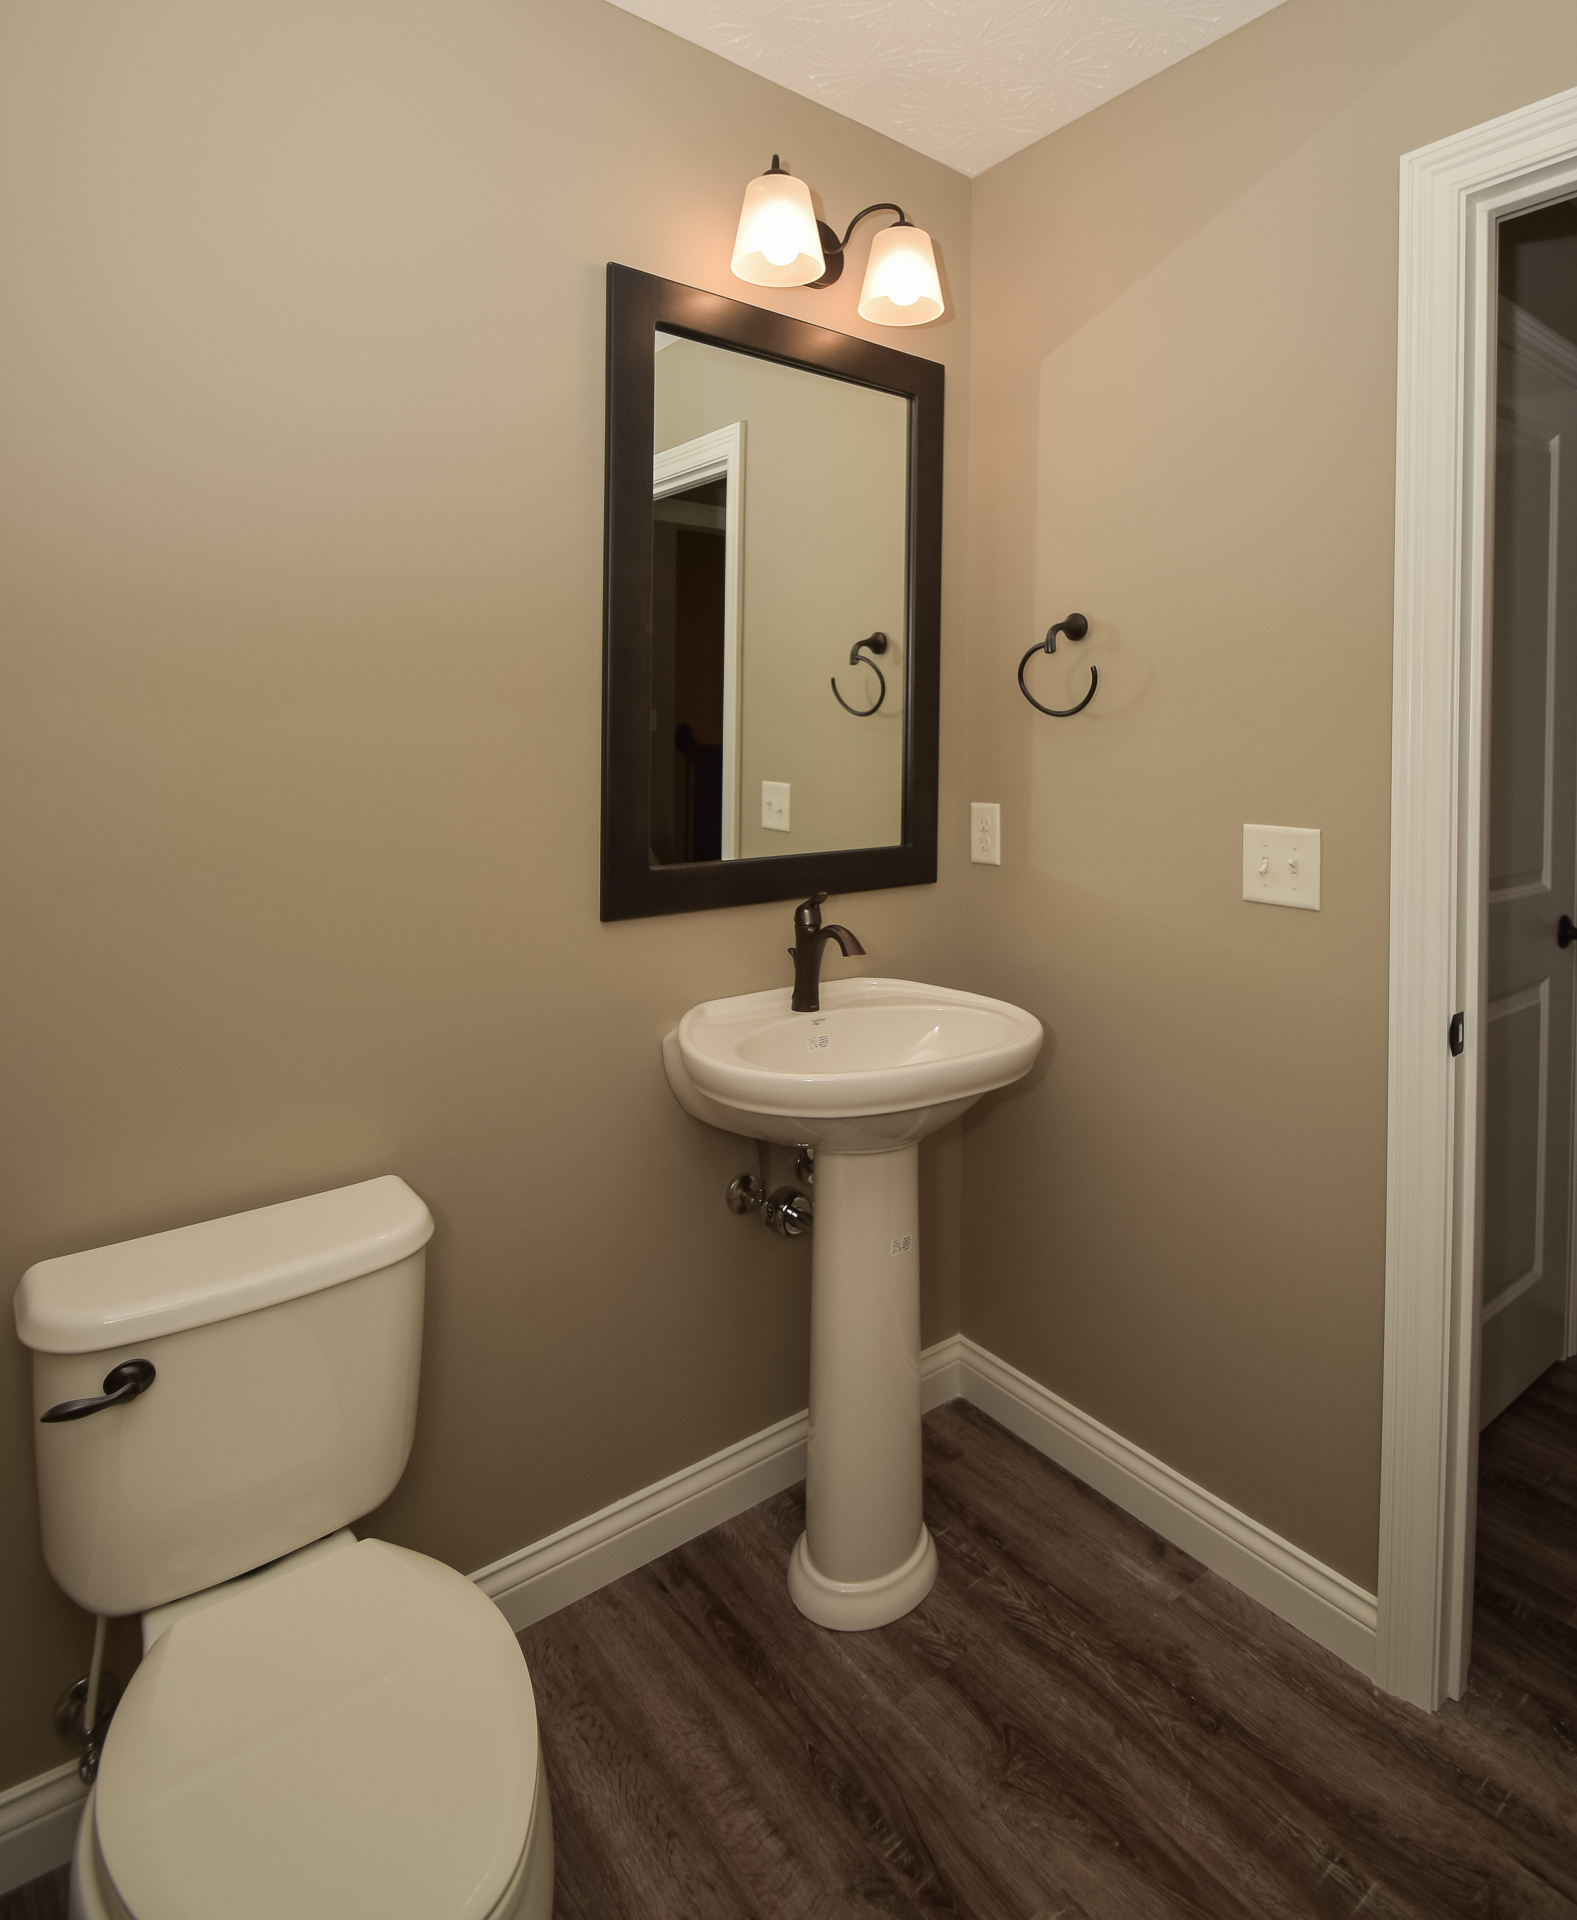 Mansfield Waverly 340 pedestal sink in biscuit with Eva ORB fixure, Arden light fixture